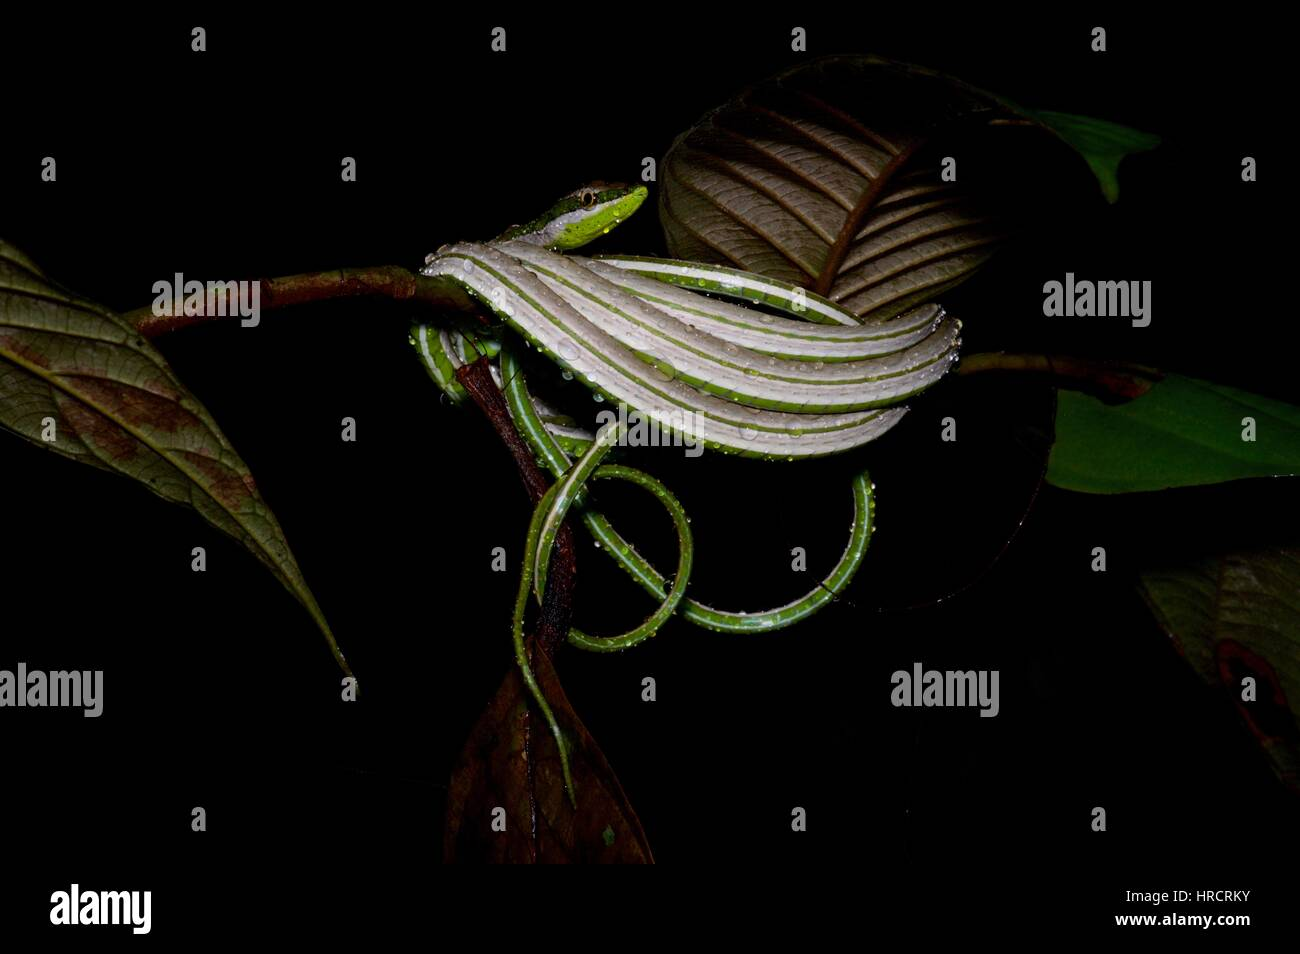 A dripping wet Green-striped Vine Snake (Philodryas argentea) coiled in the Amazon rainforest at night in Loreto, Stock Photo